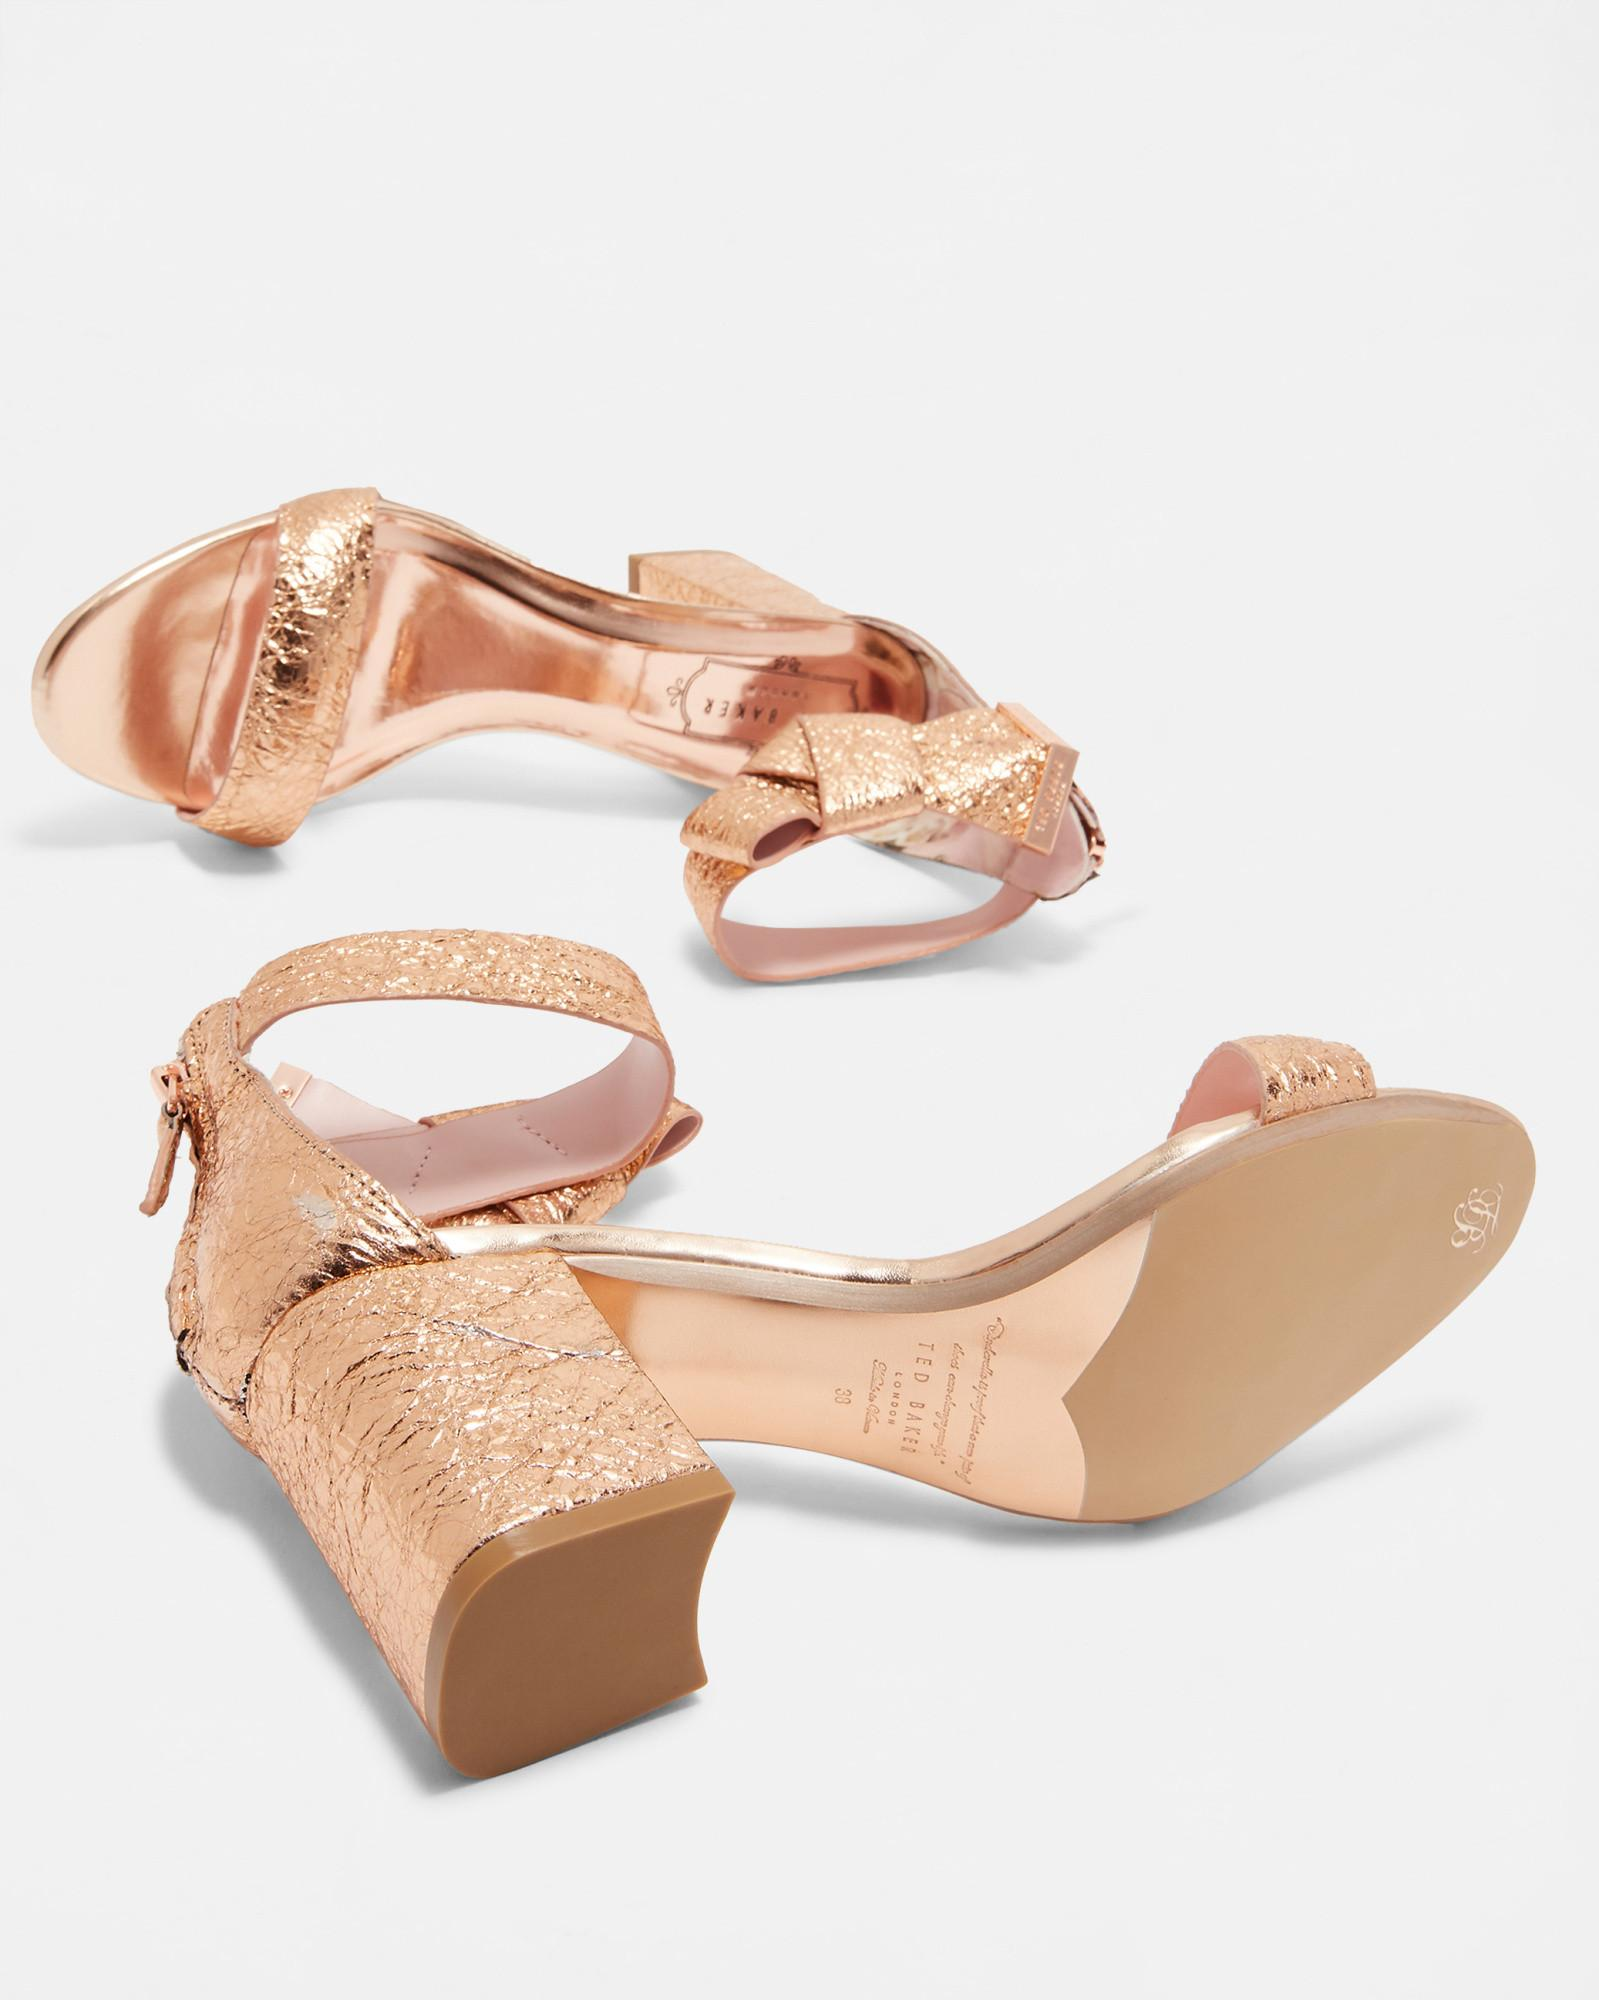 97ad264bf Ted Baker Bow Ankle Block Heel Sandal in Pink - Lyst